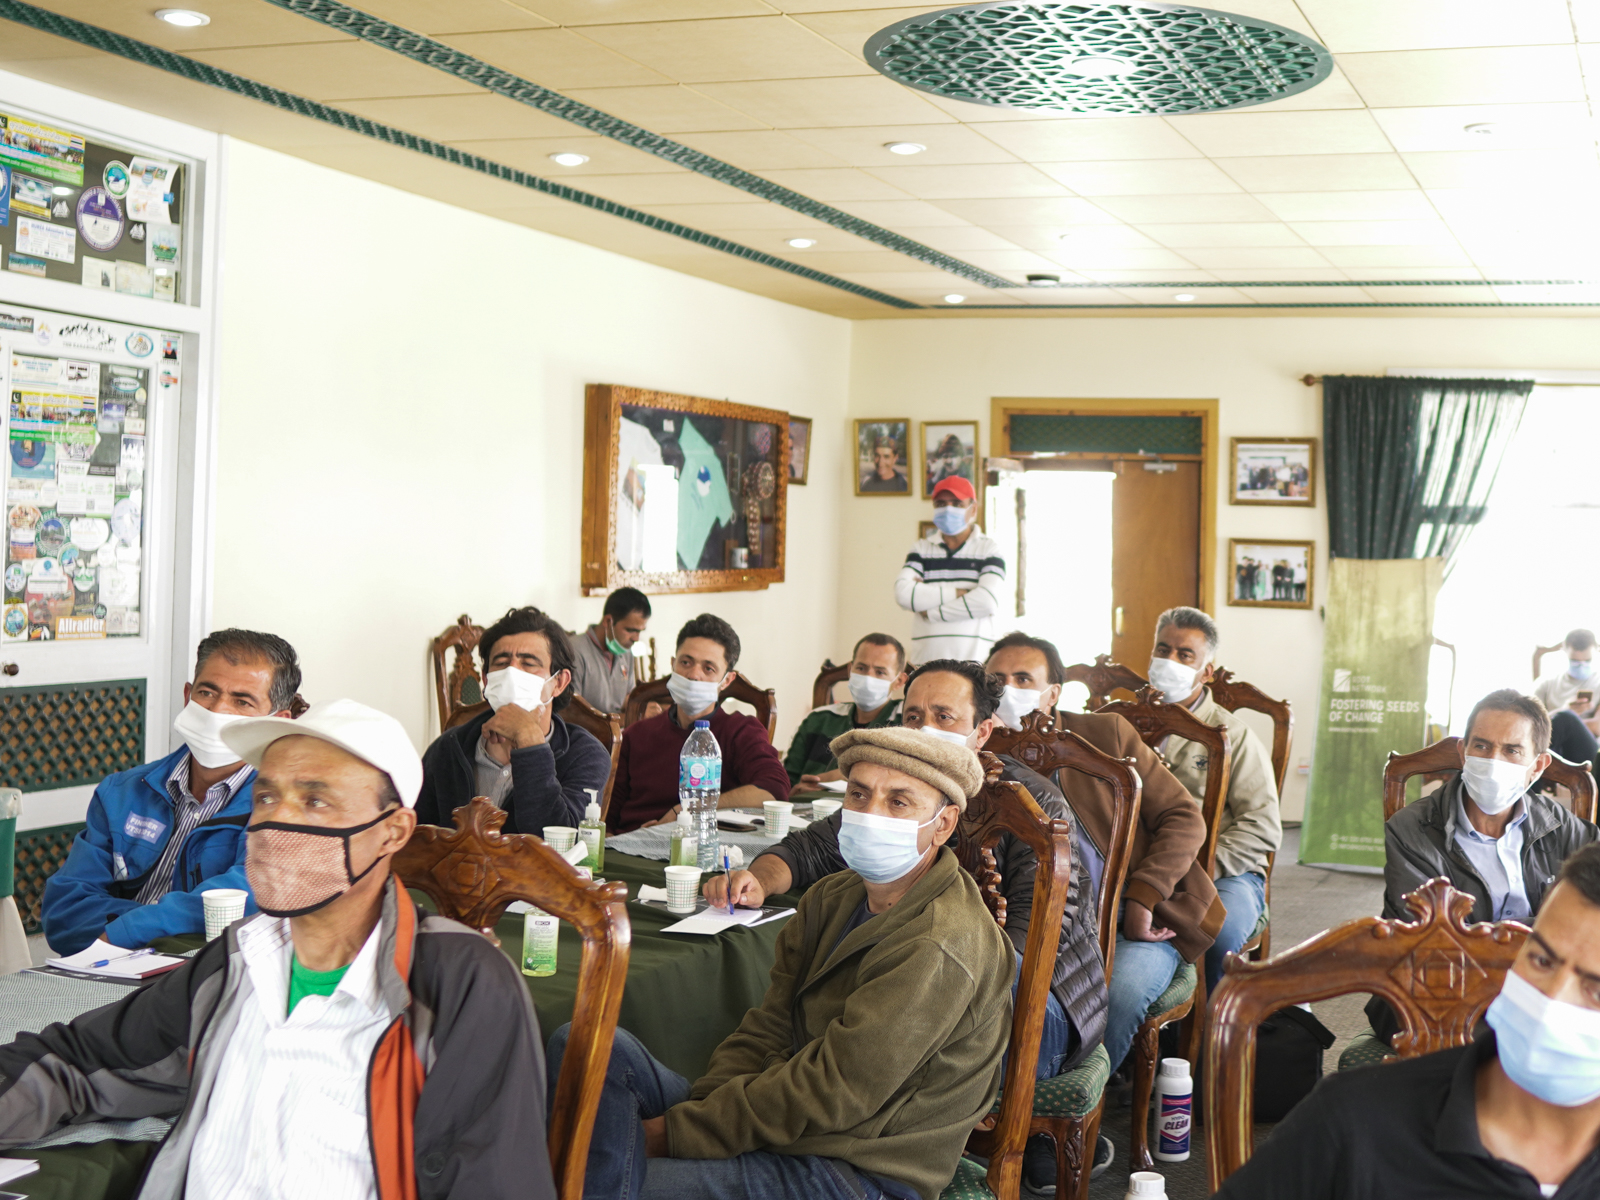 Tourism professionals at the Root Network COVID-19 Safety training in Passu, Gilgit-Baltistan, Pakistan